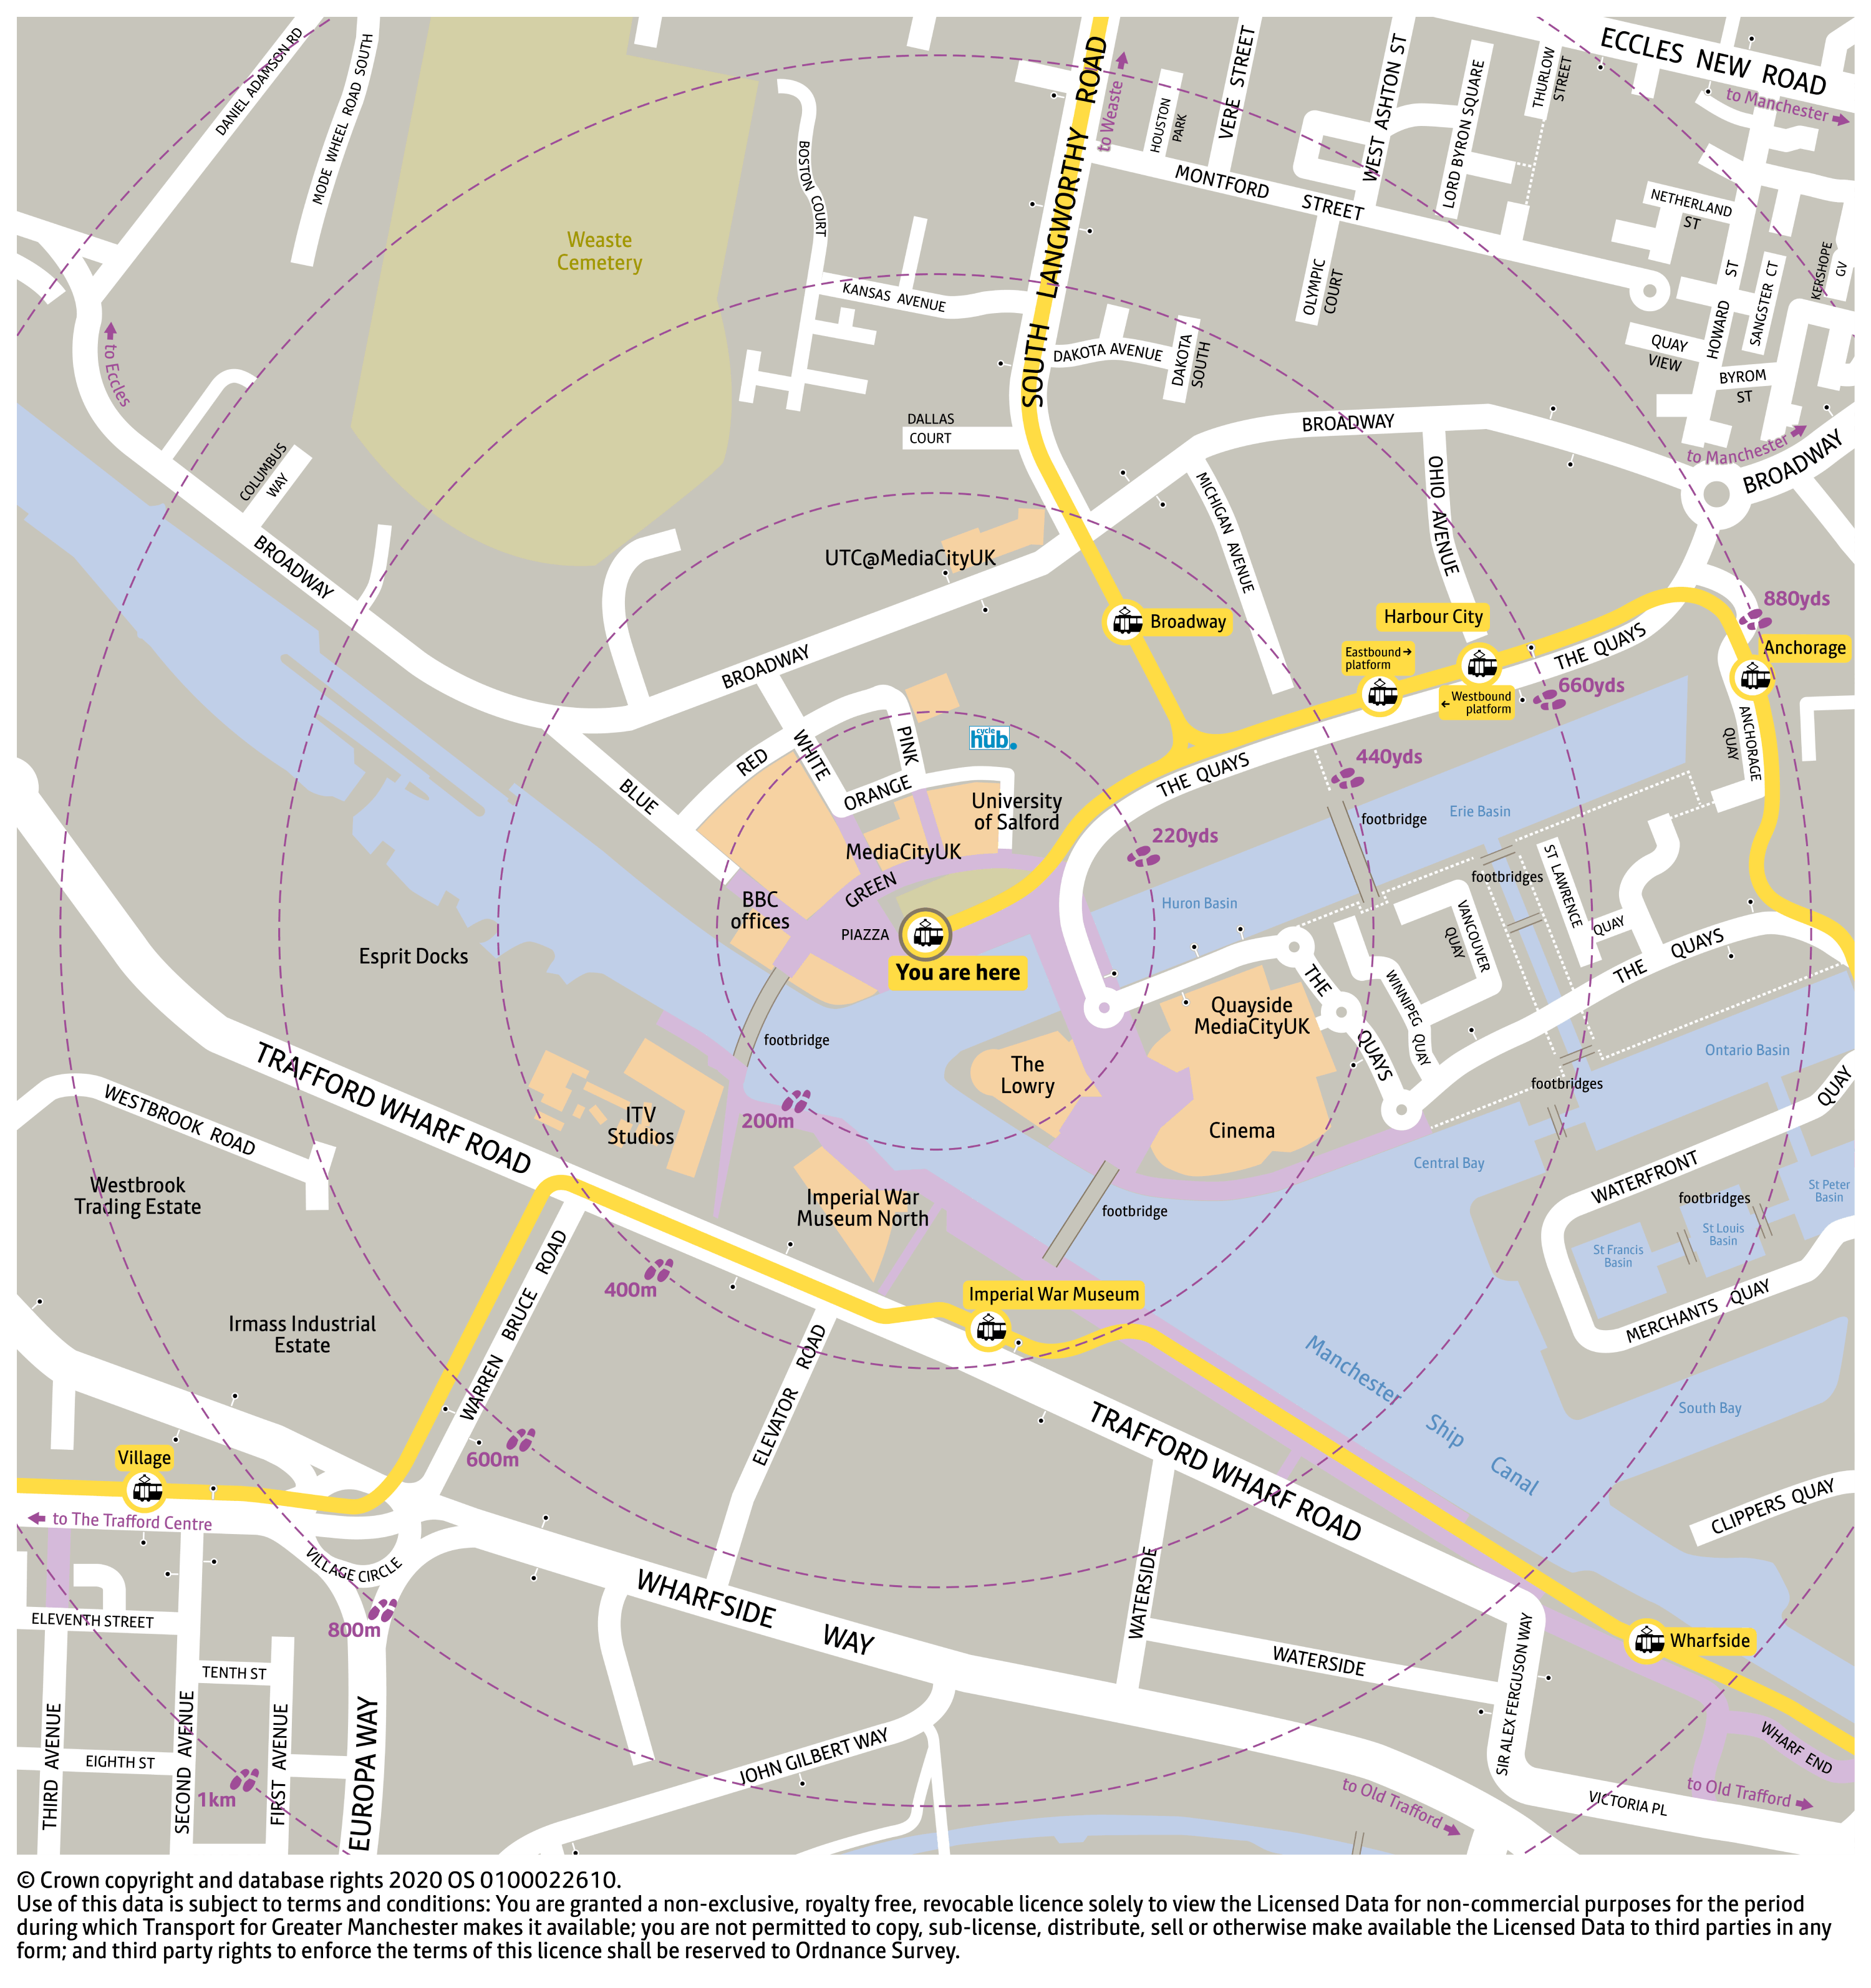 Local area map for MediaCityUK tram stop